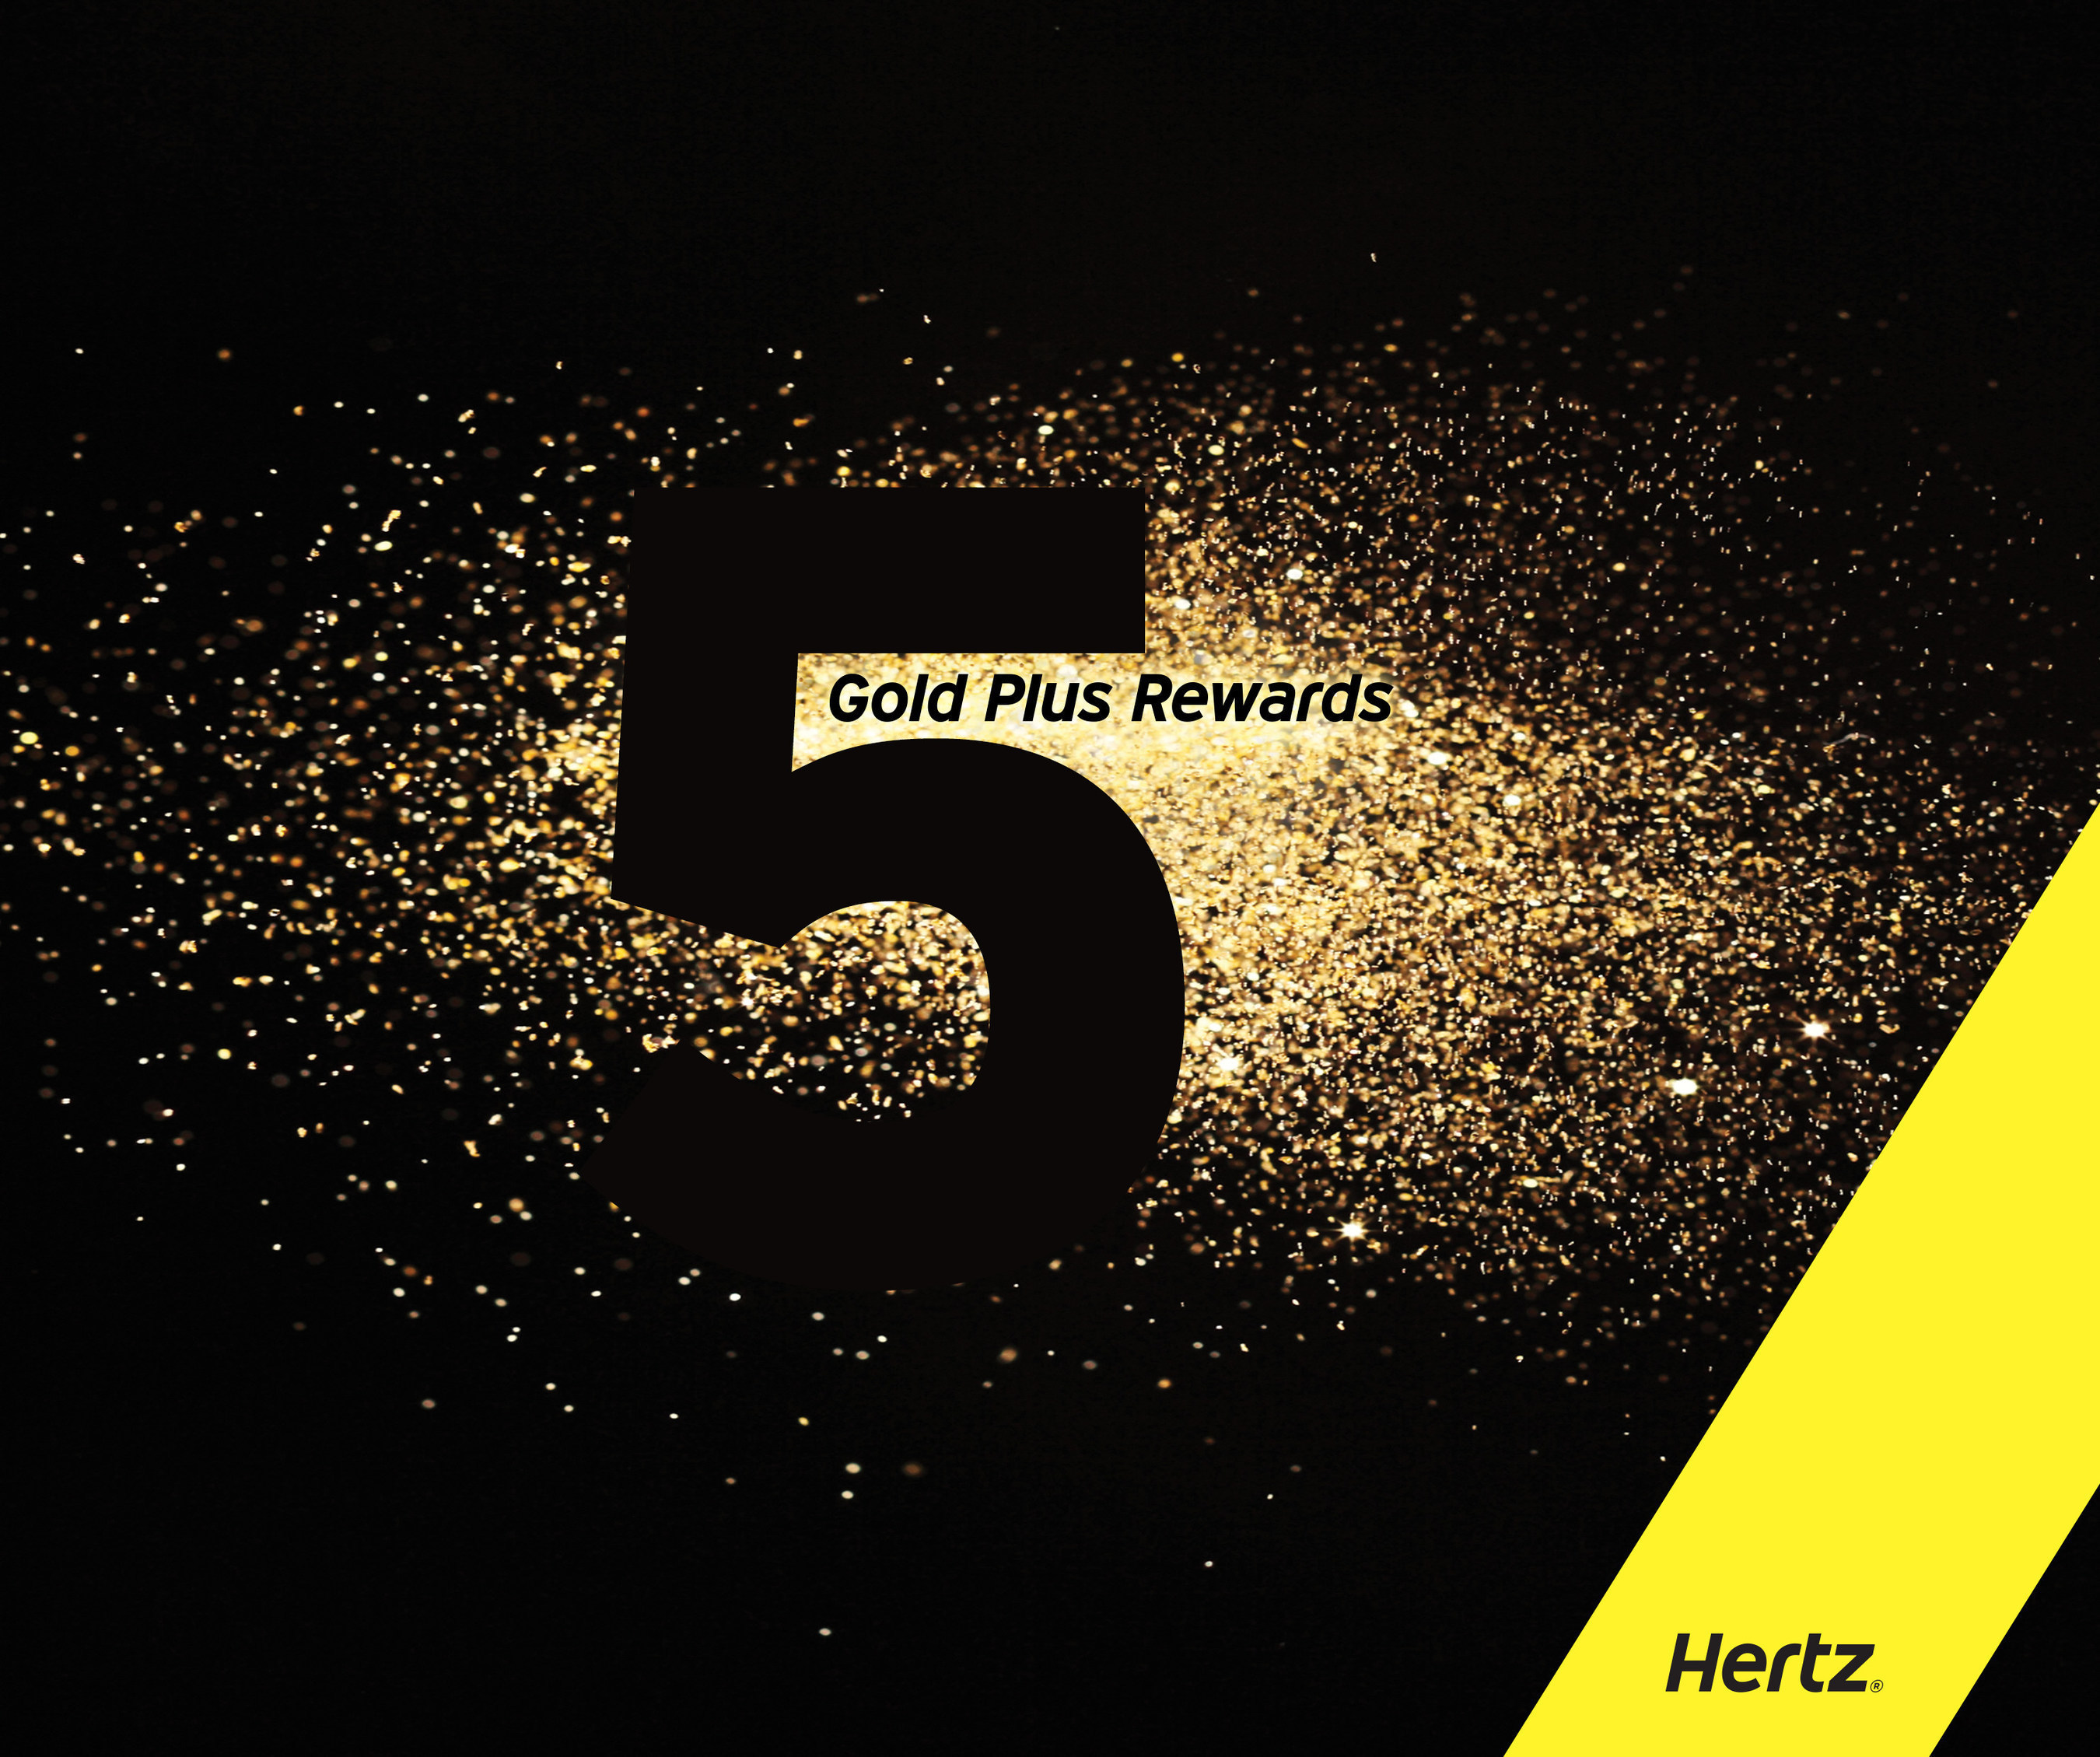 Hertz Gold Plus Rewards giving free car rental days to mark fifth anniversary in Europe